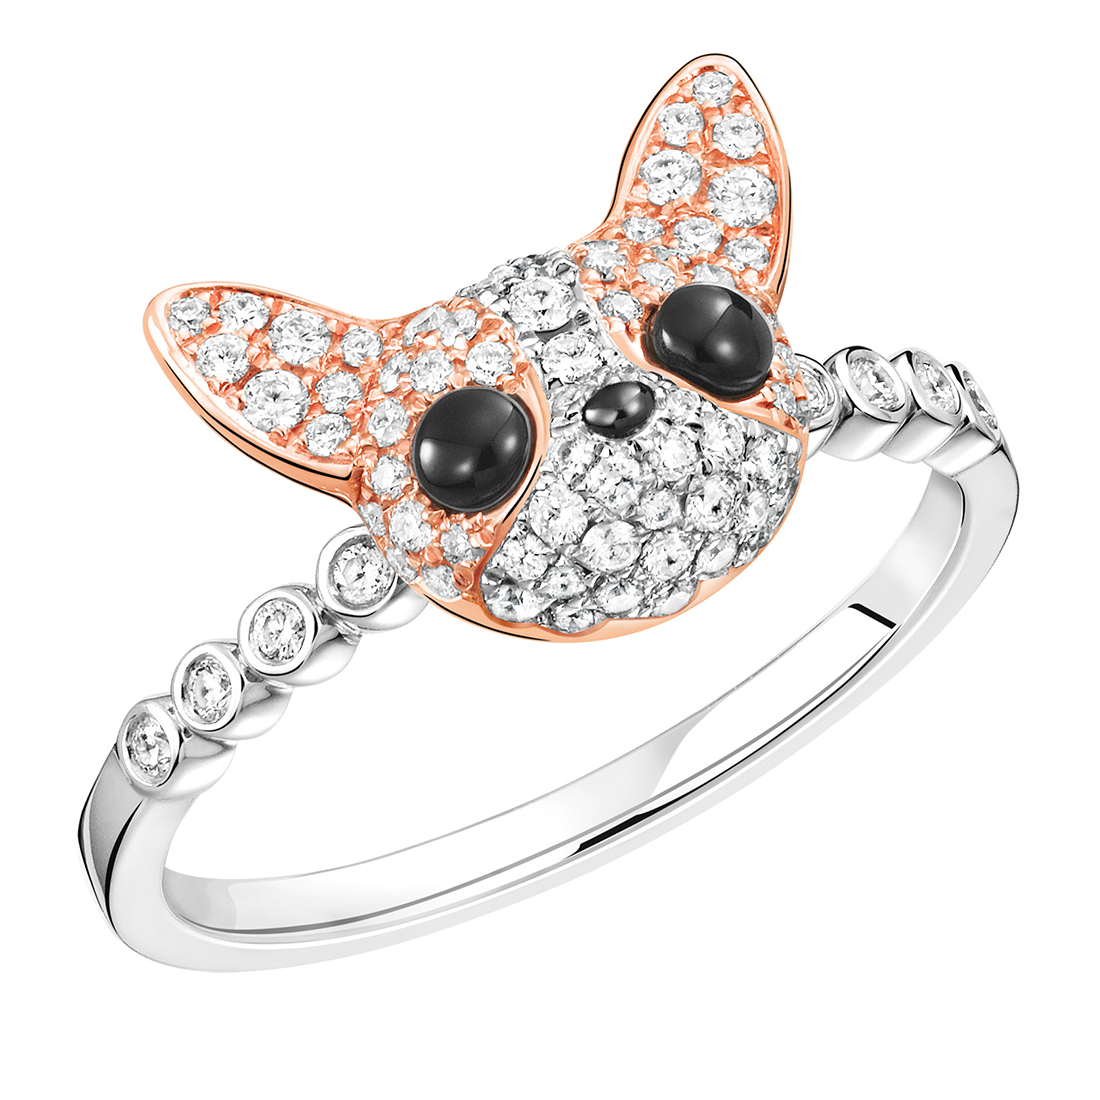 Qeelin WANG WANG Peekaboo Chihuahua 18K White & Rose Gold Diamond Ring